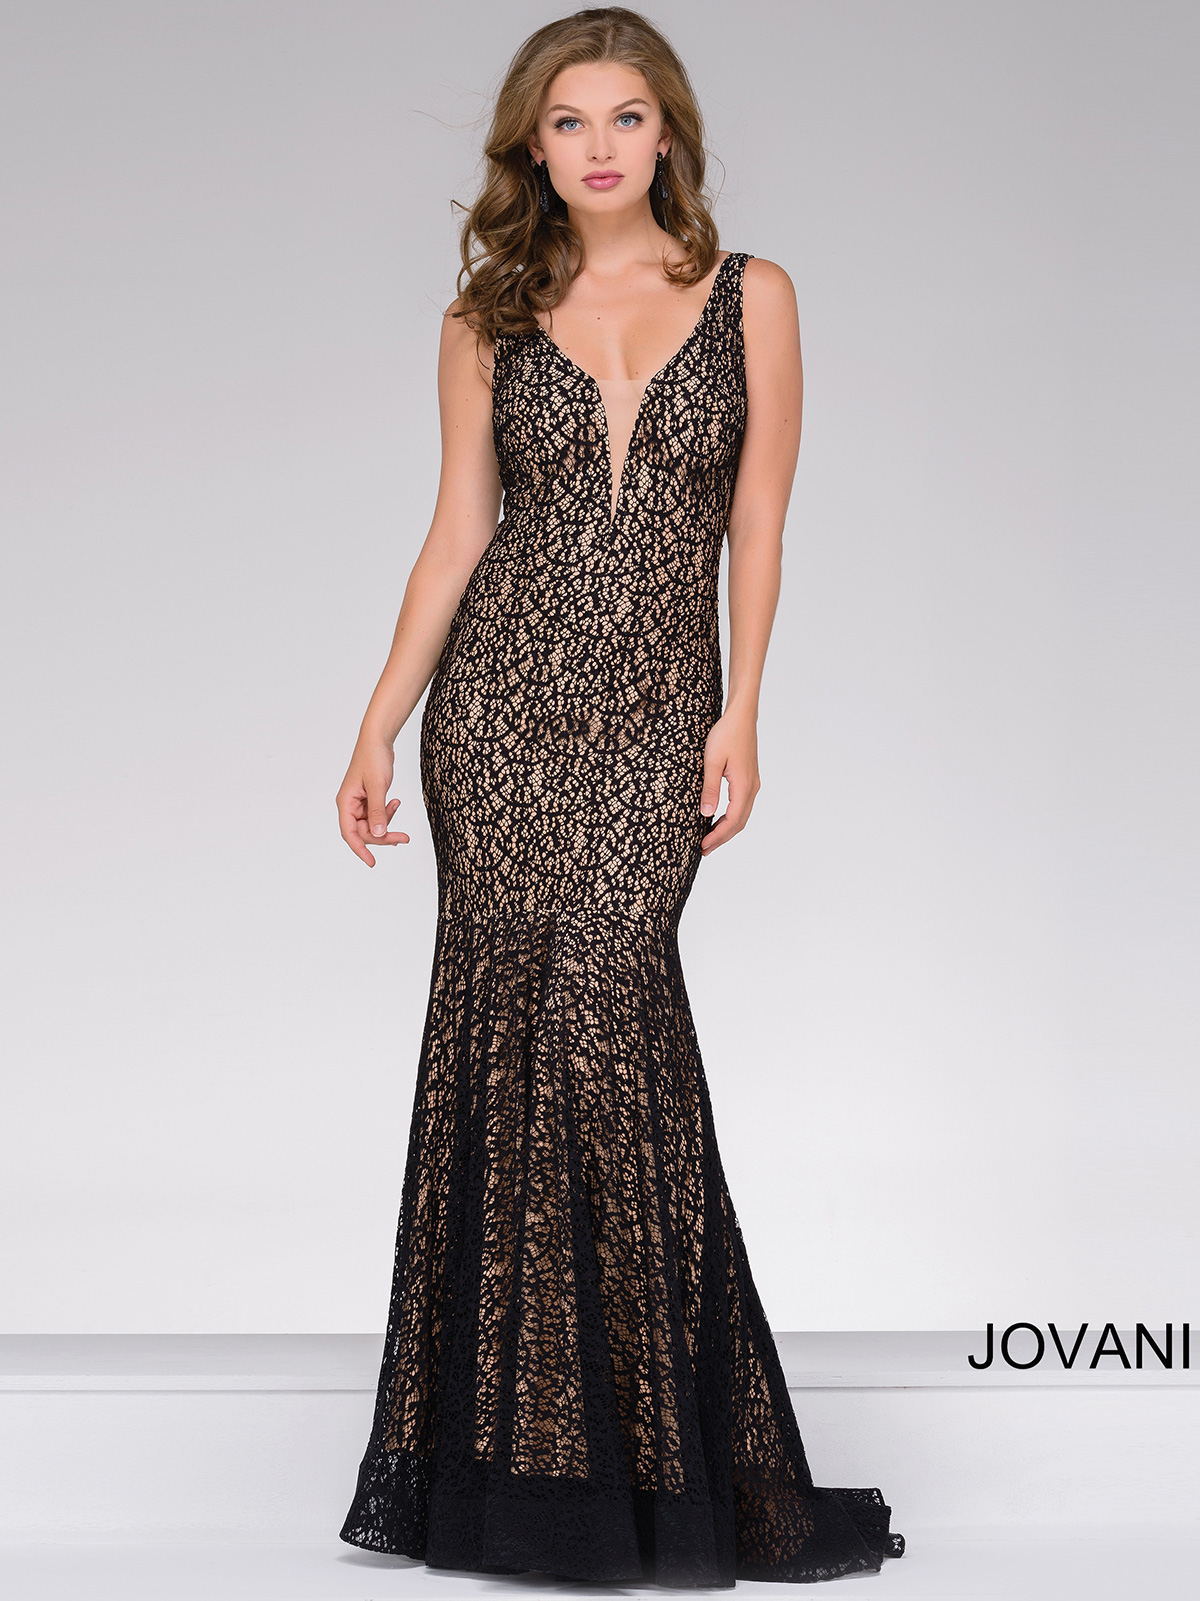 Jovani 42784 Sleeveless Lace Pageant Dress|PageantDesigns.com